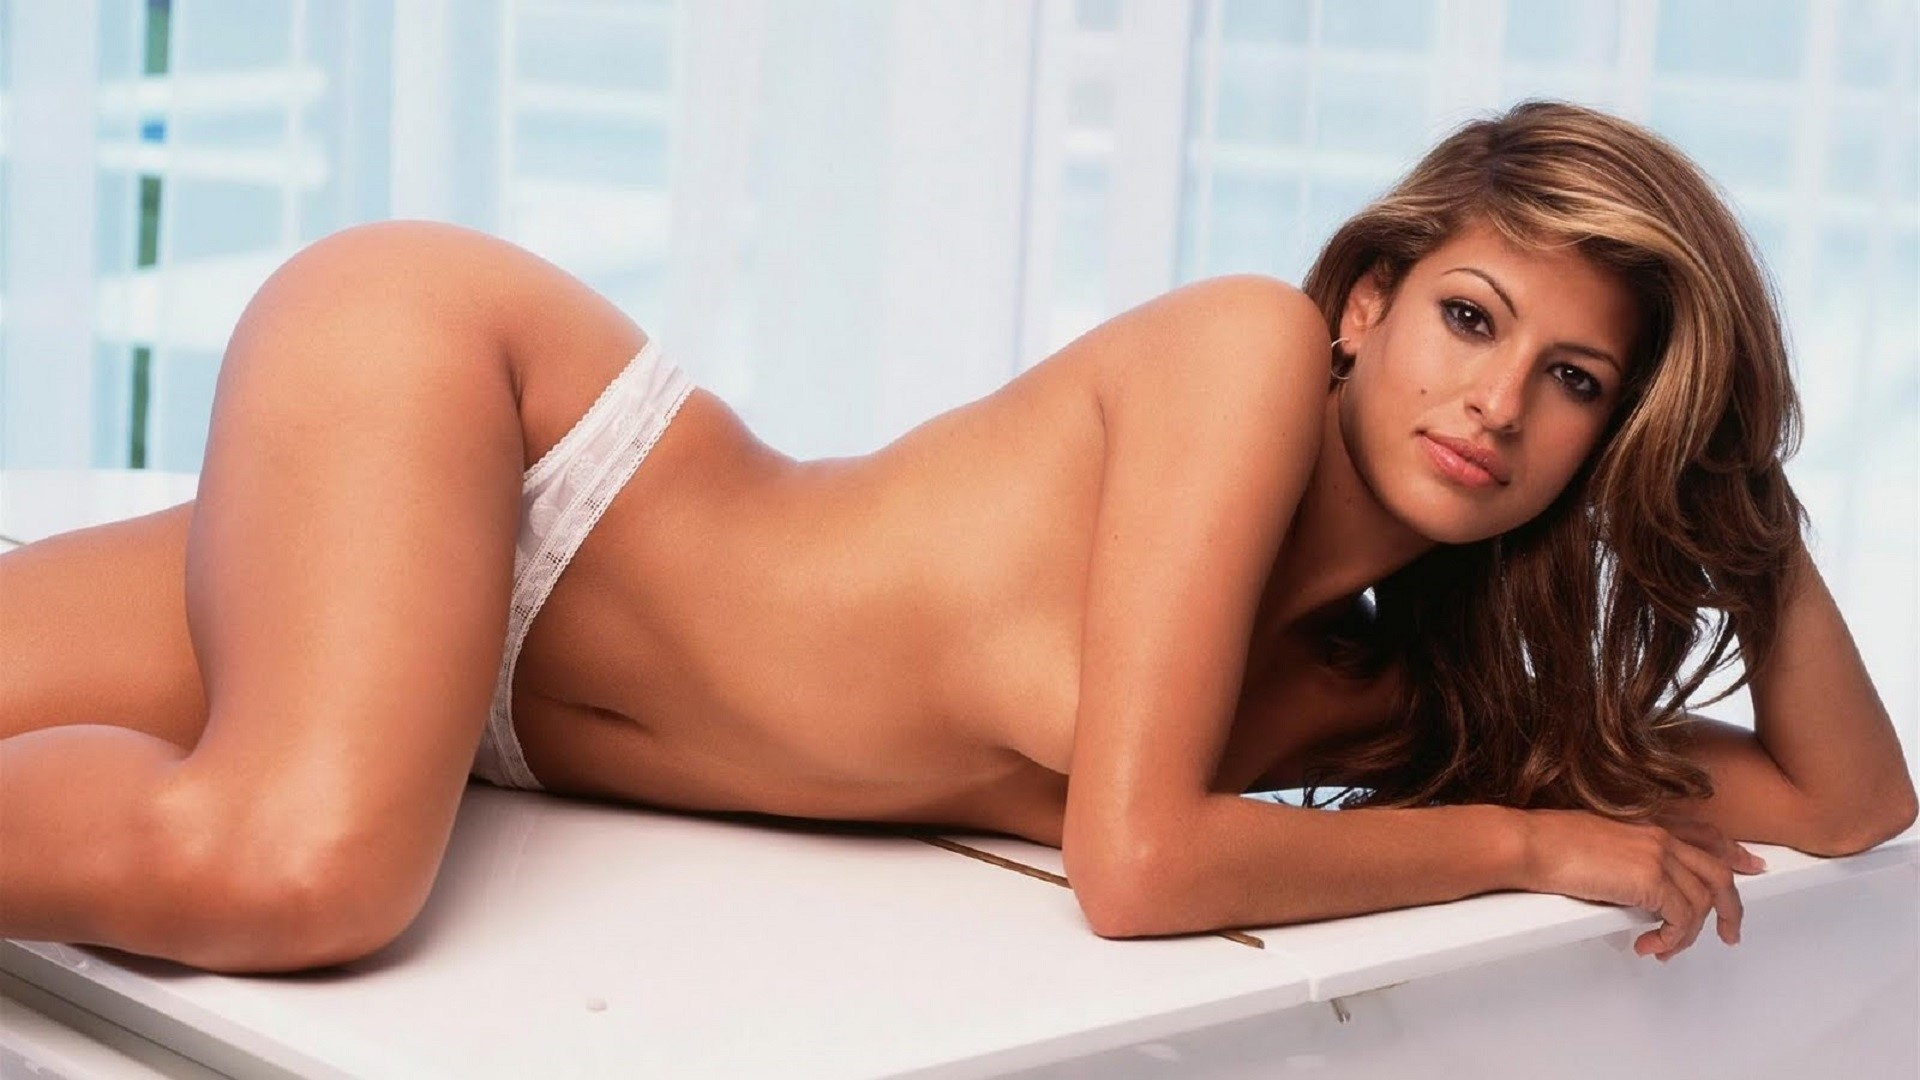 Eva Mendes Wallpapers Nude